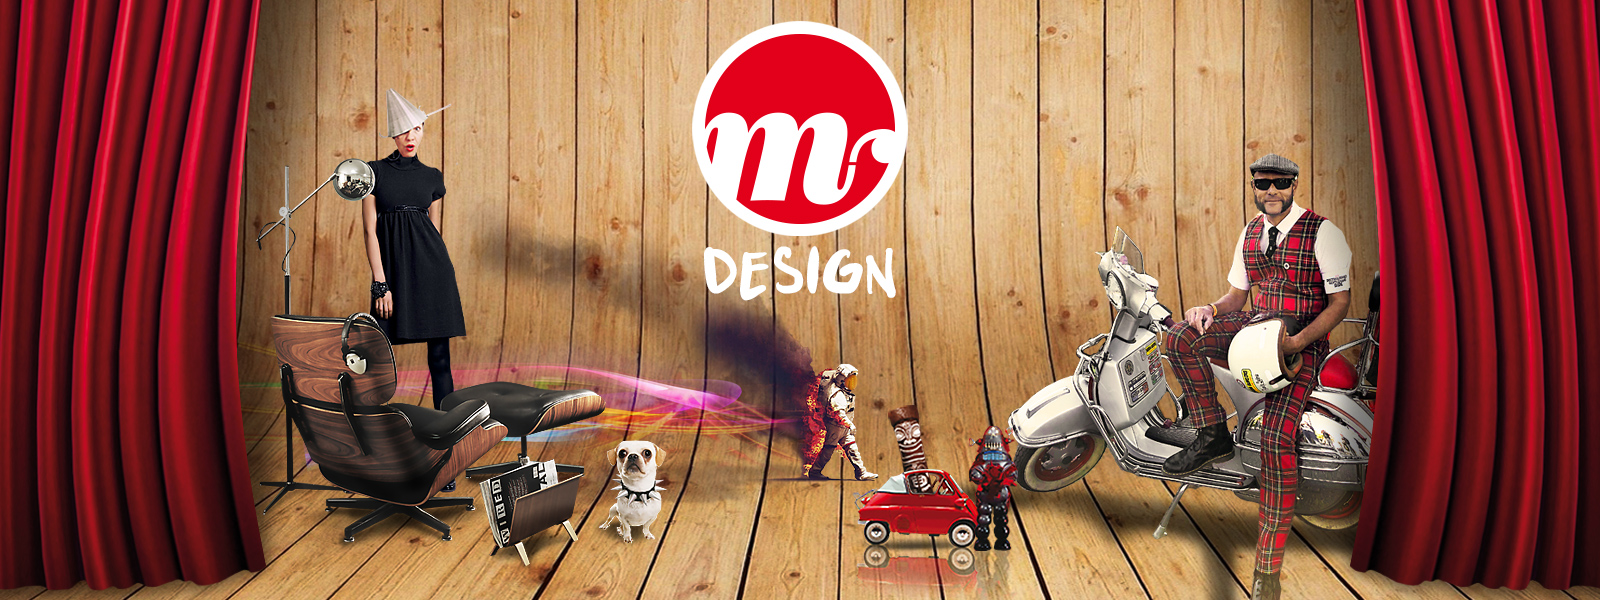 Mephisto Design, communication par l'image